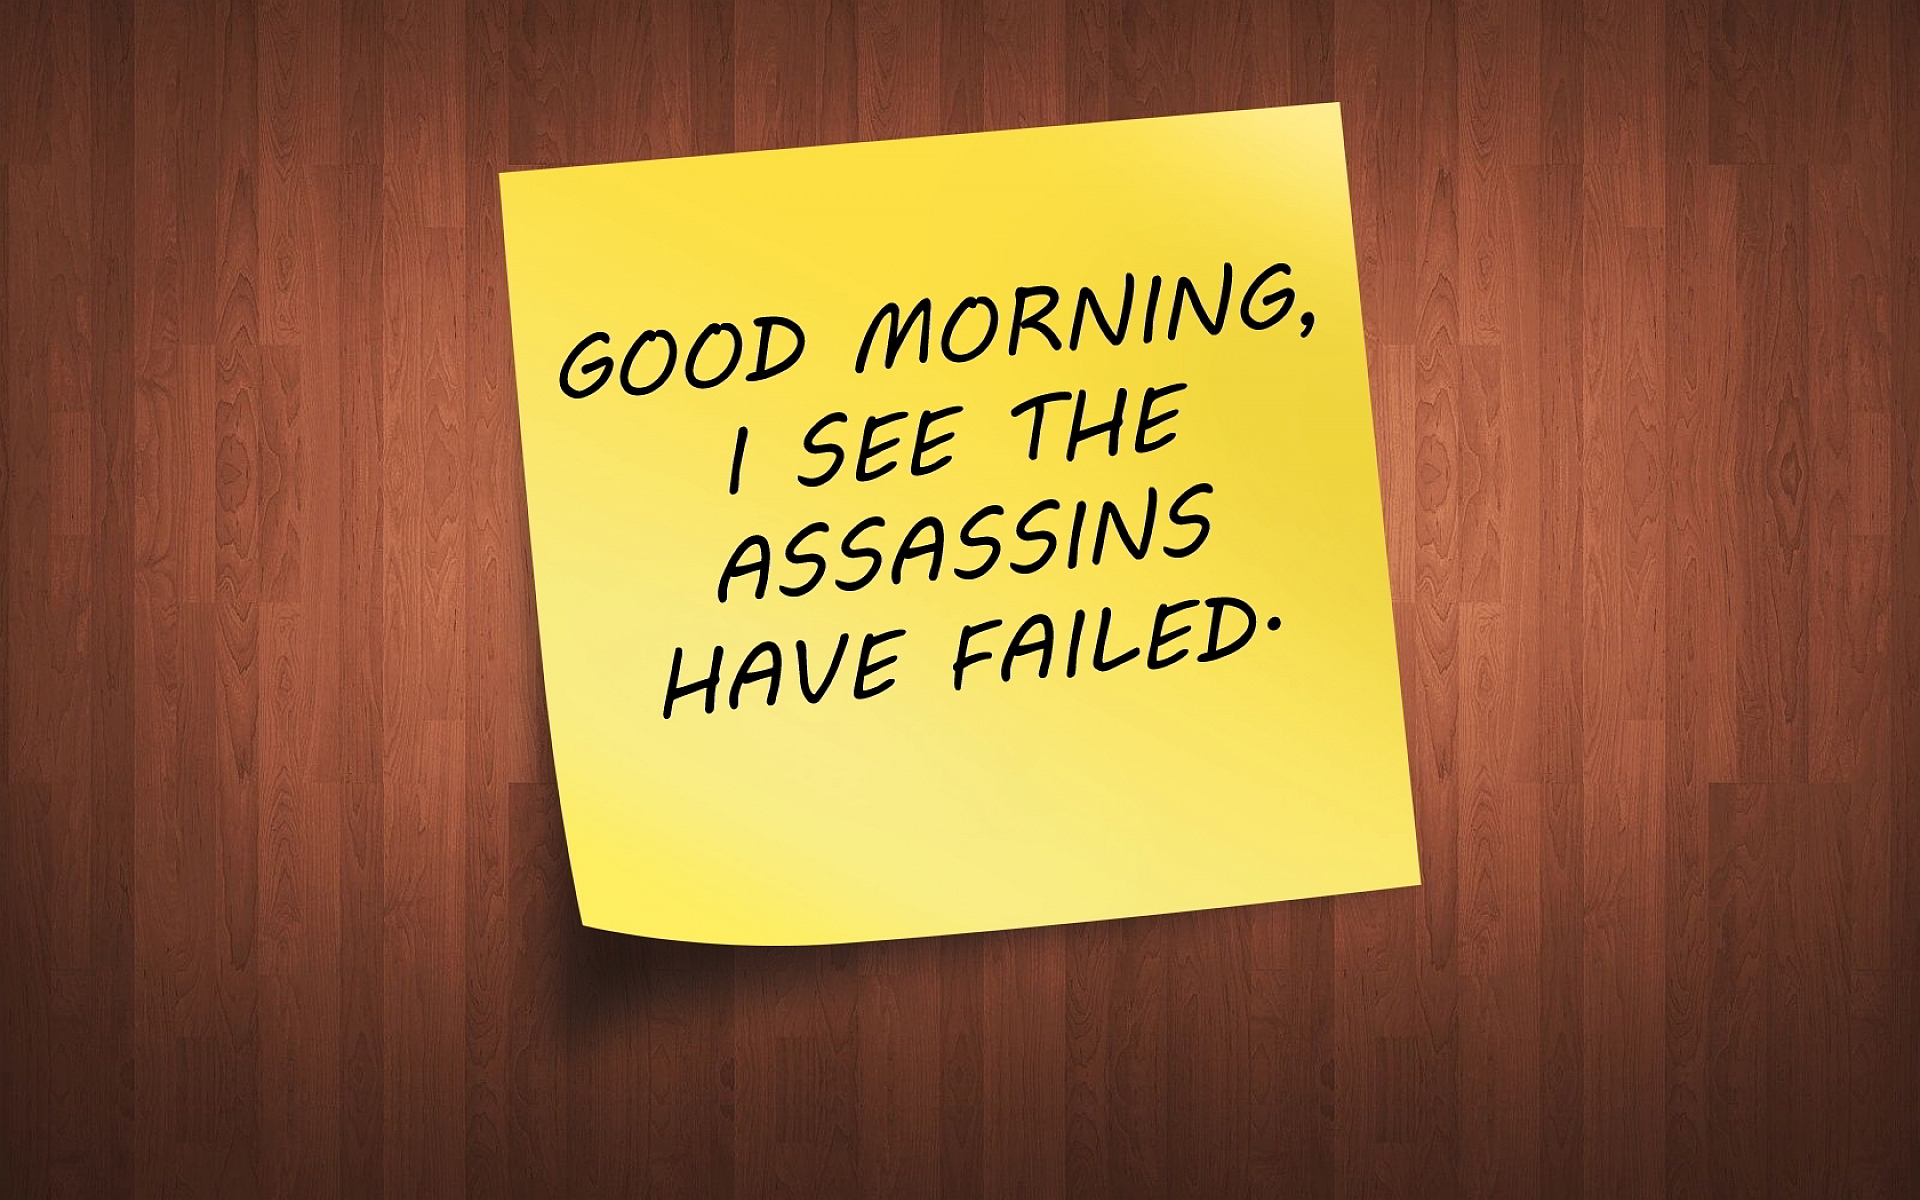 Good morning assassins failed